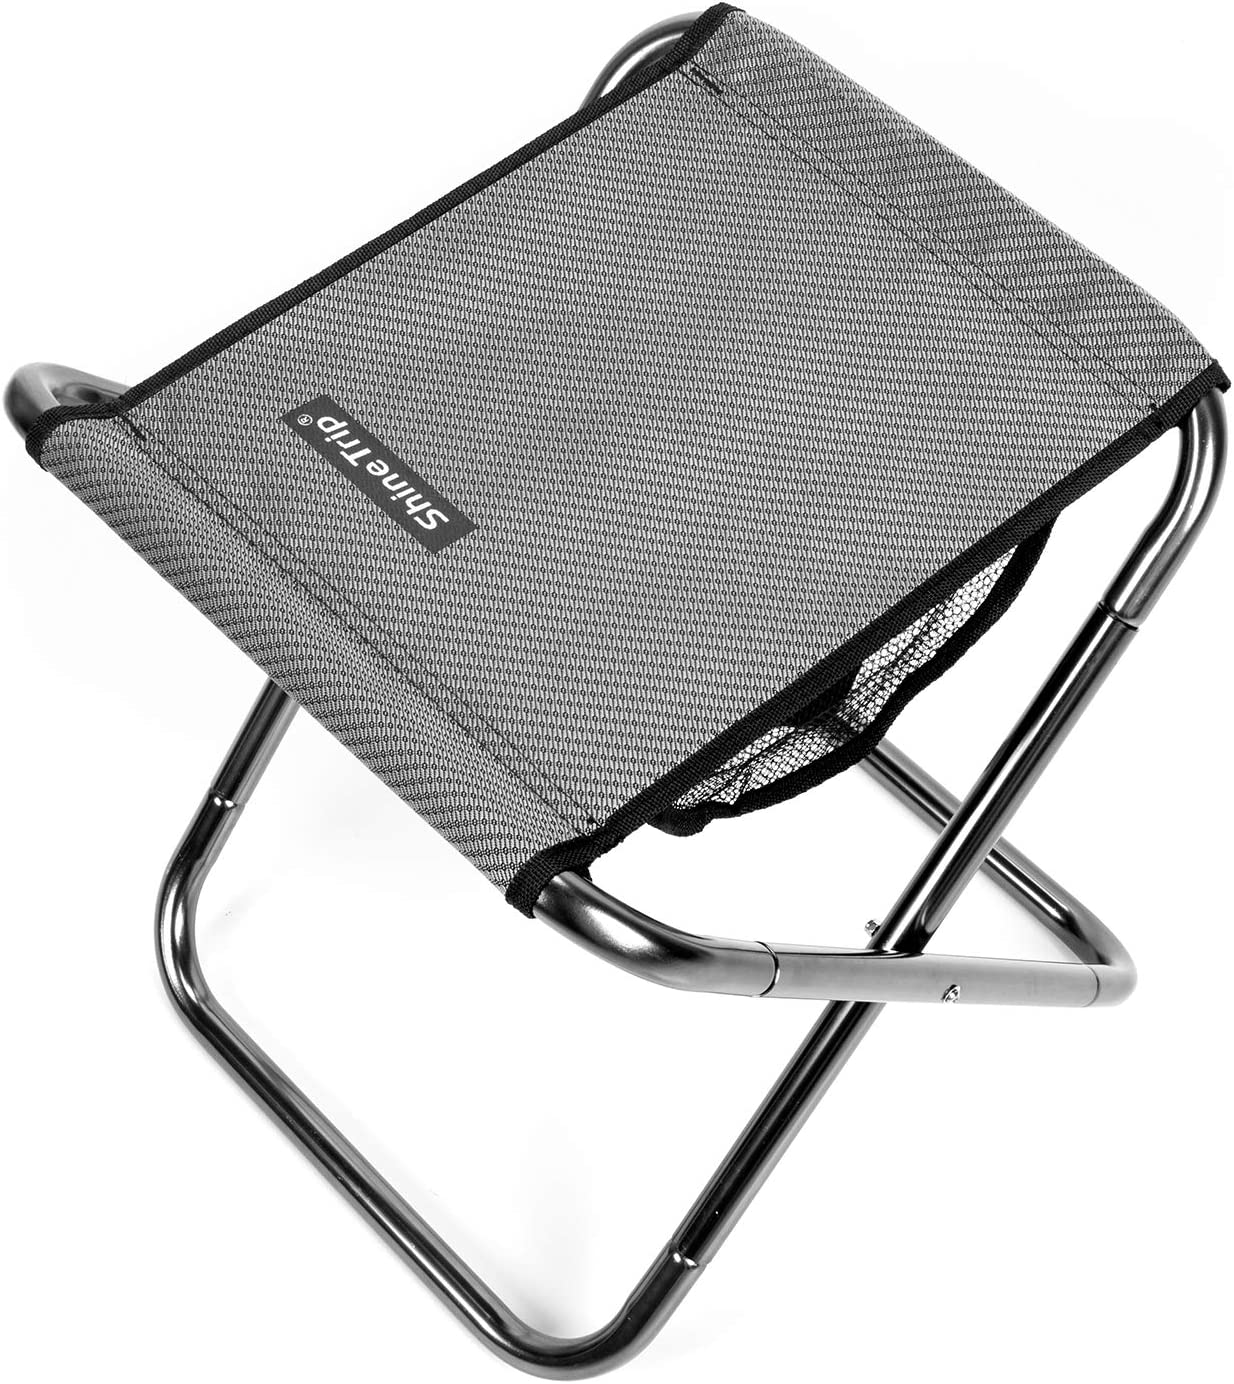 Small Folding Stool Portable Chairs,Outdoor Camping Stool Foldable,Lightweight Aluminum Fishing Seat Footstool Folding Chair for Camping,Hiking, Fishing,Barbecue,Travel, Garden,Picnic